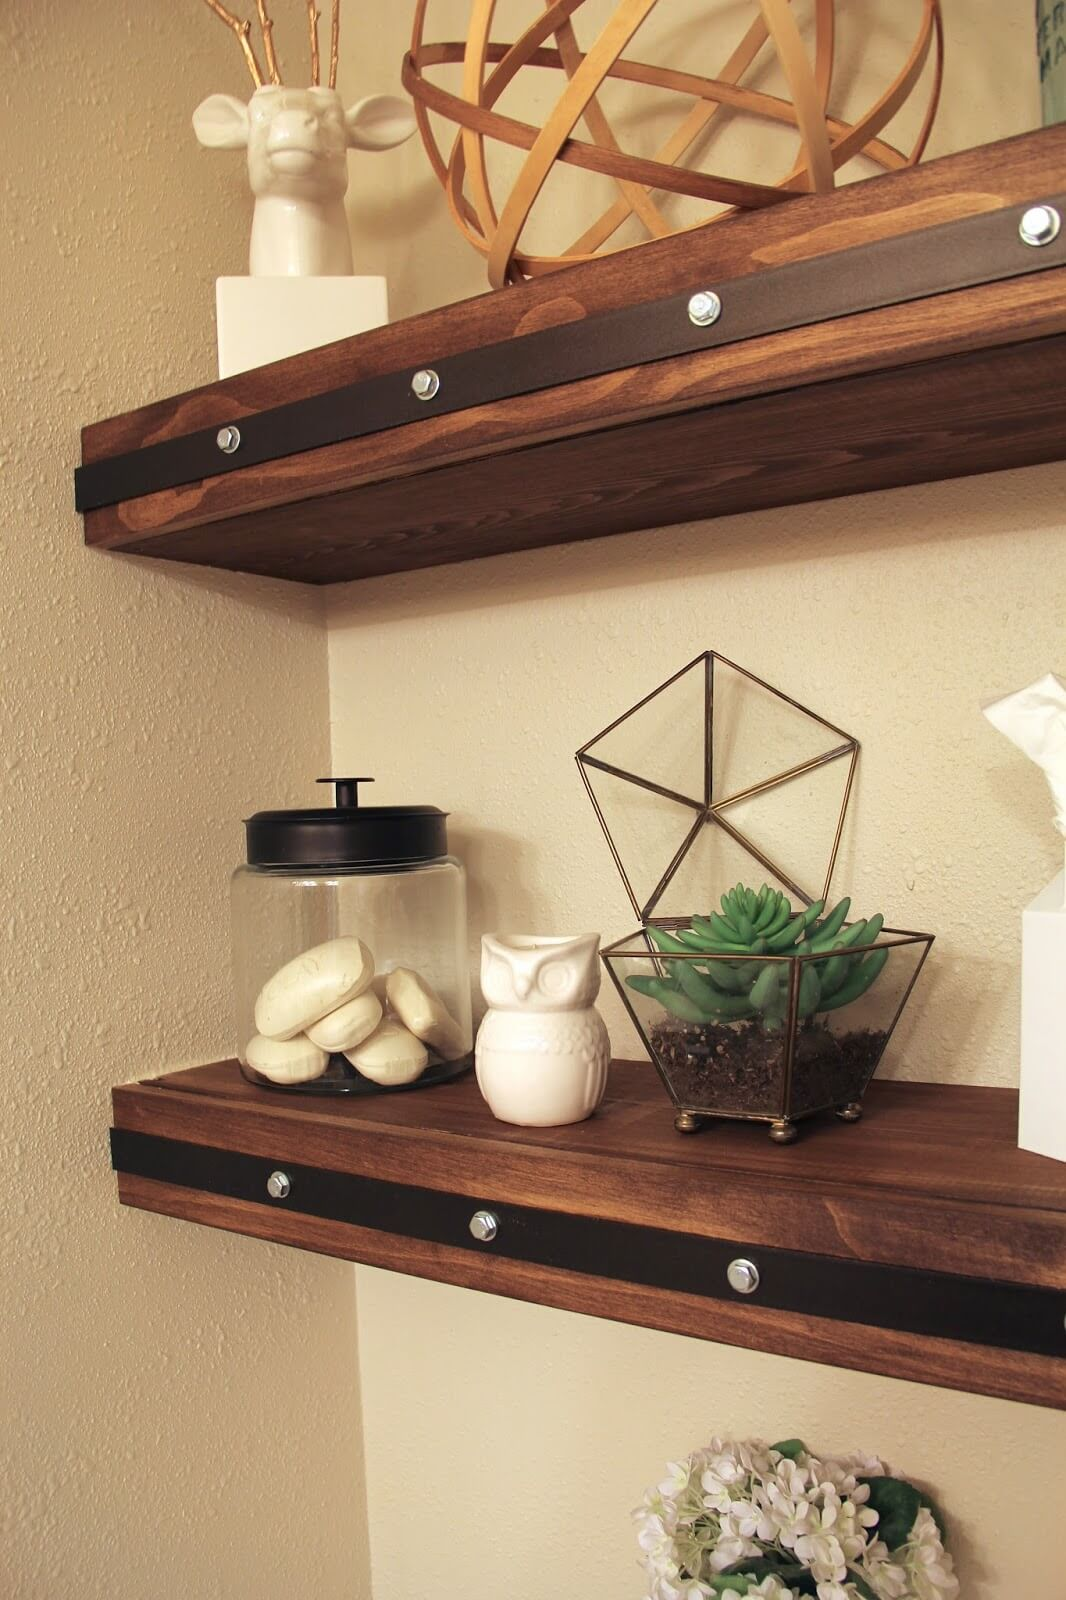 best diy floating shelf ideas and designs for homebnc design tures country studded beautifully stained corner argos vinyl floor tiles oak wall cubes wood mounted shelving modern